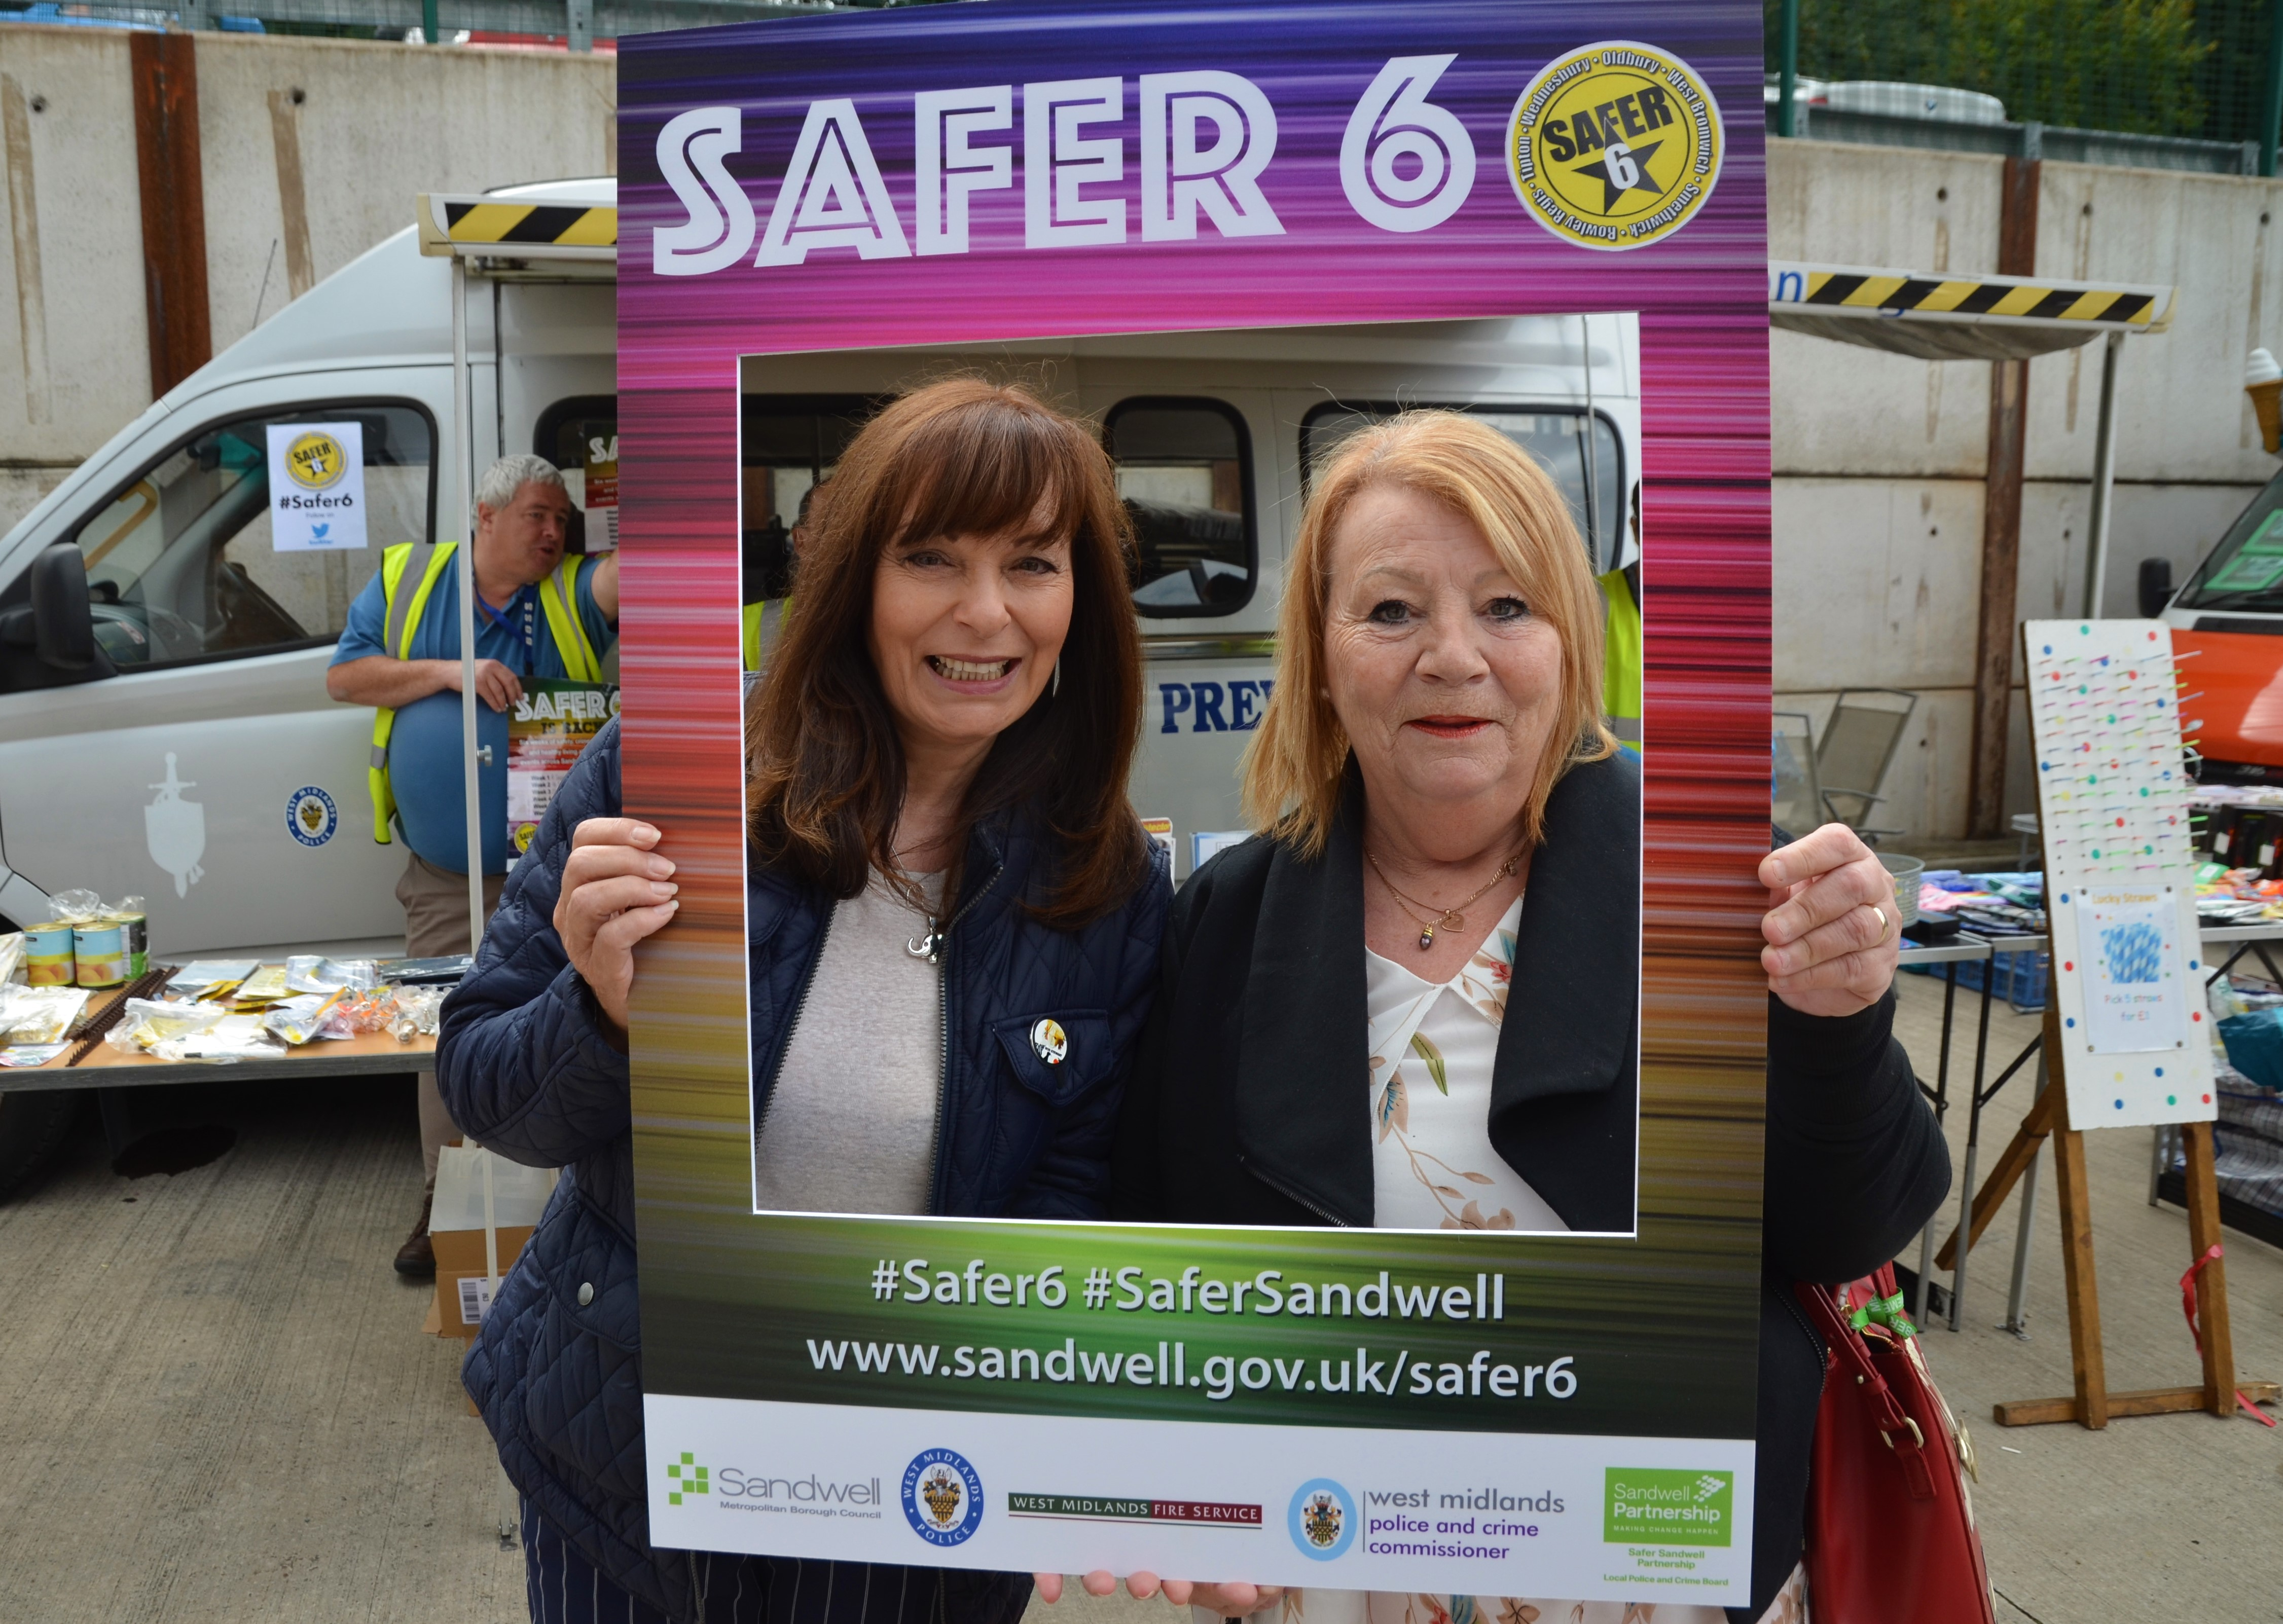 Safer 6 roadshow comes to Wednesbury Image